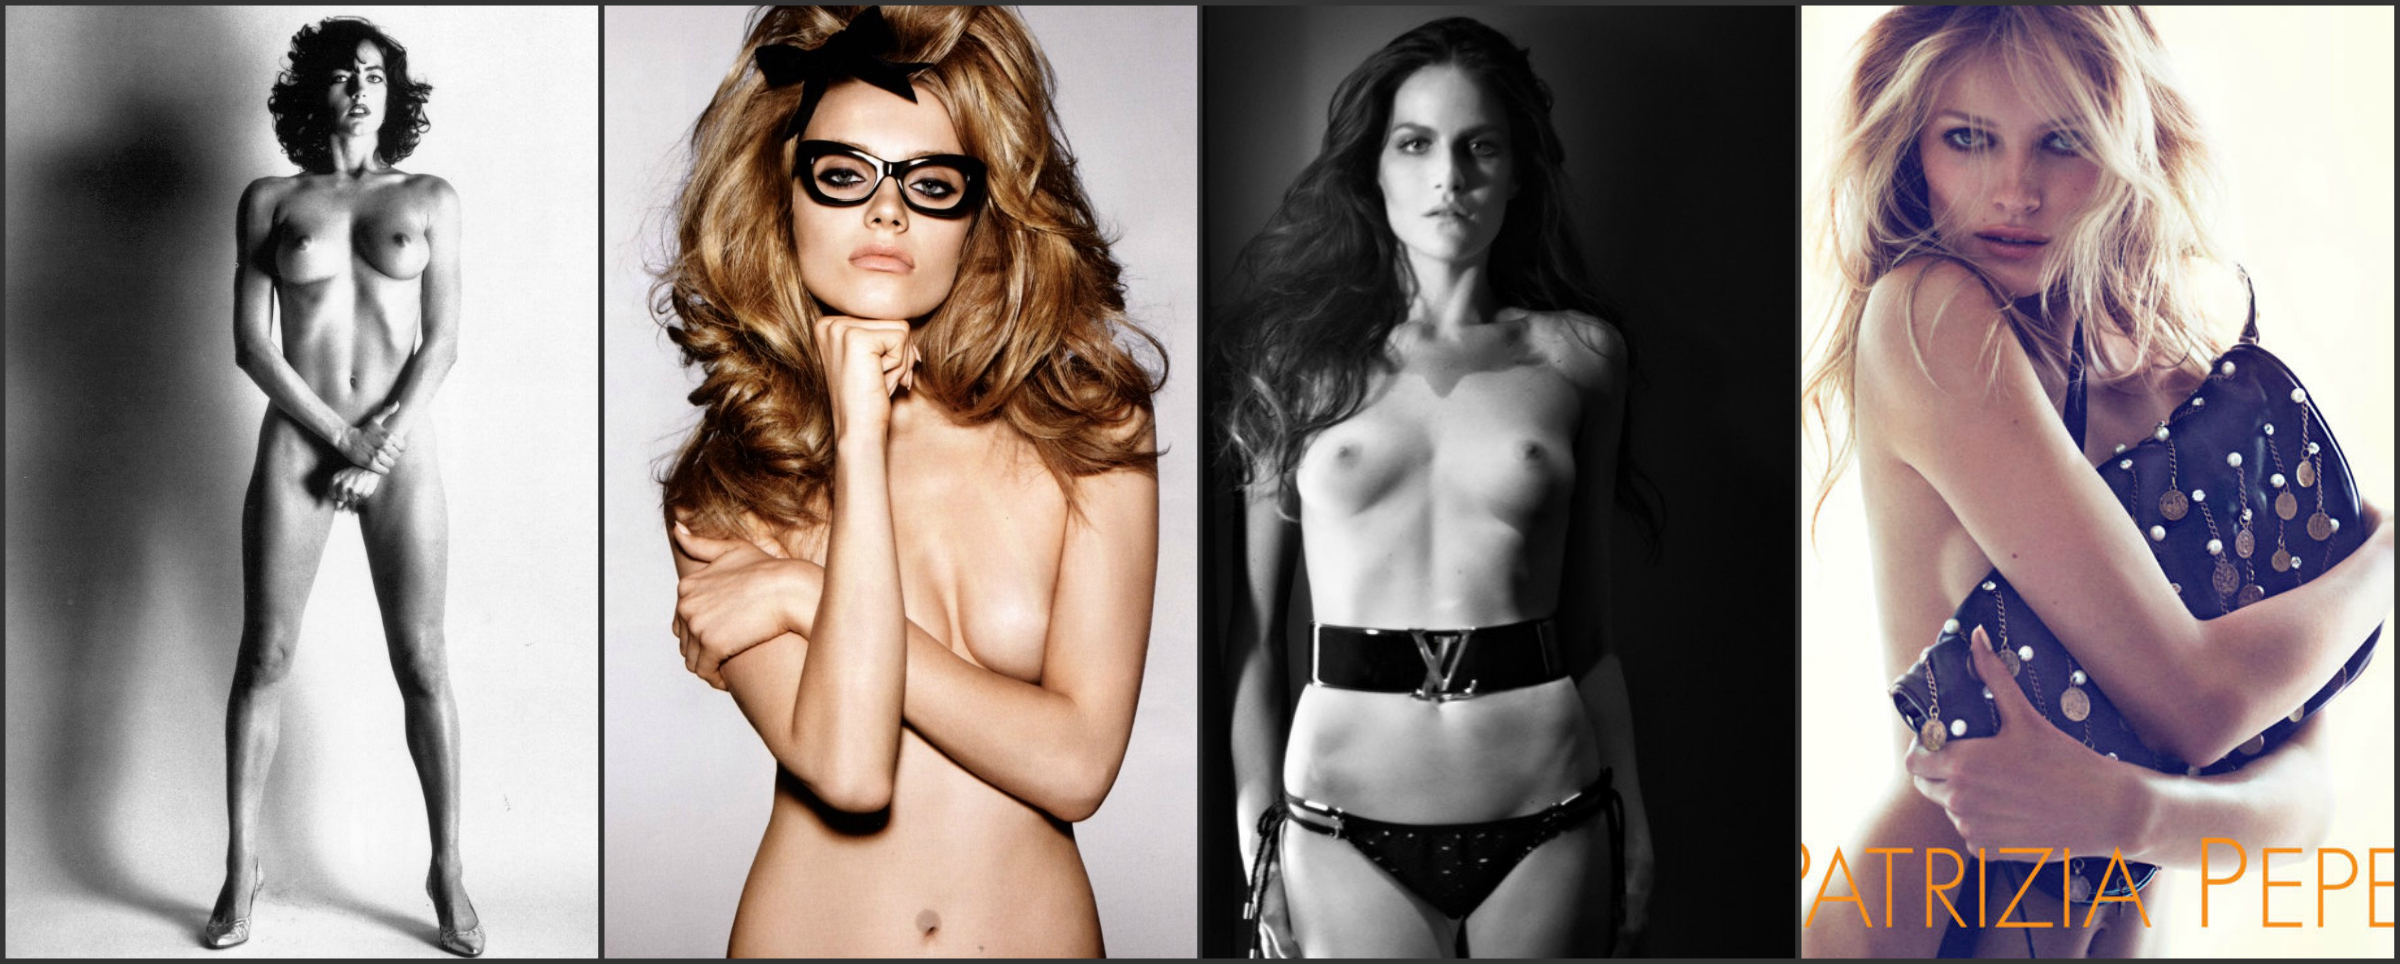 sex and nudity in fashion editorials (nsfw)